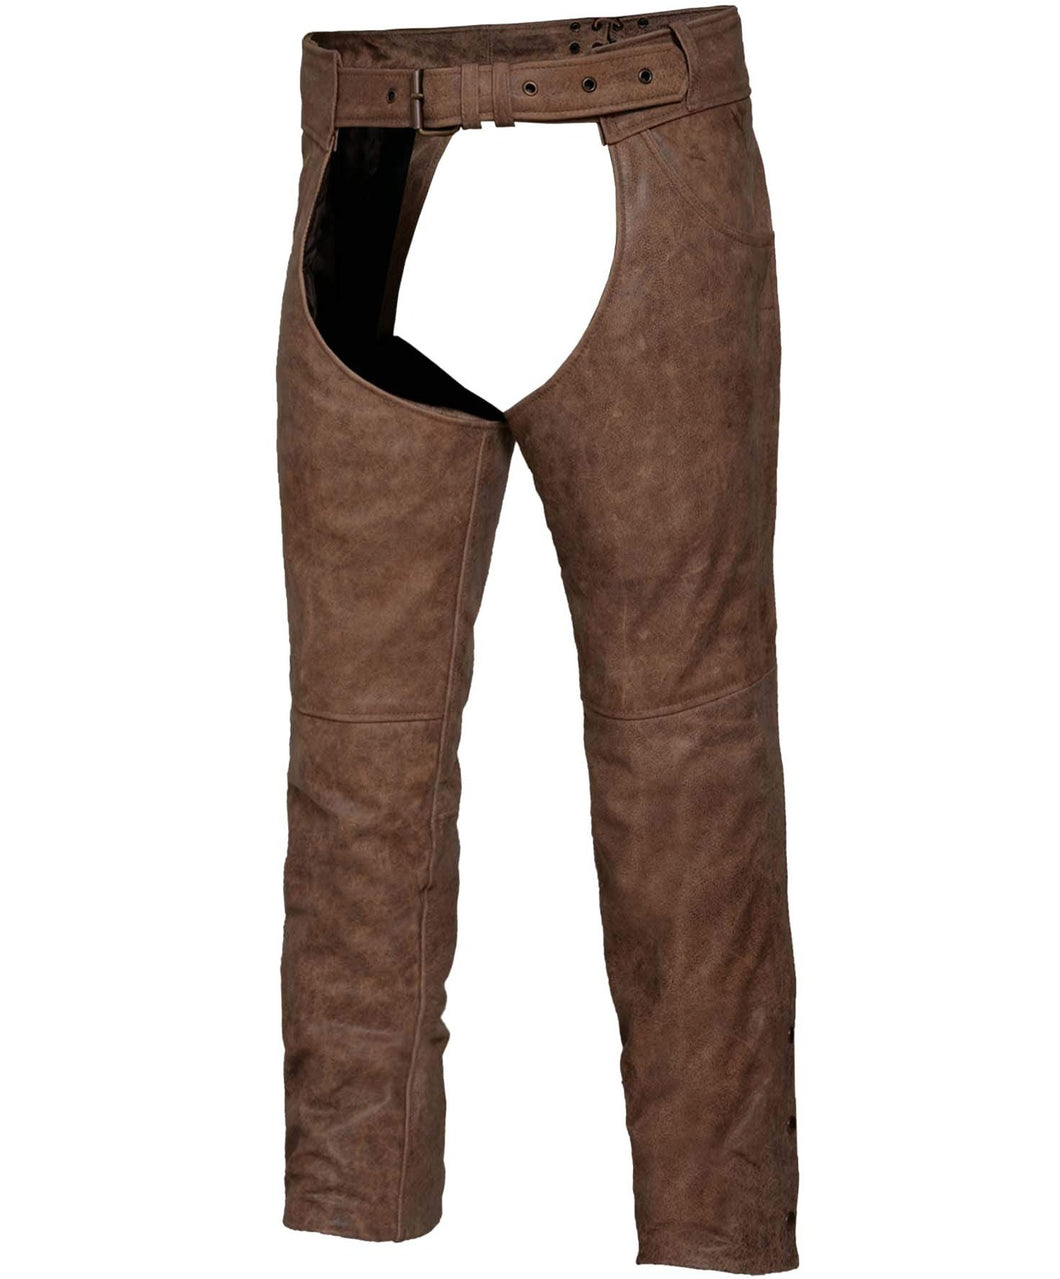 UNIK Arizona Brown Leather Chaps